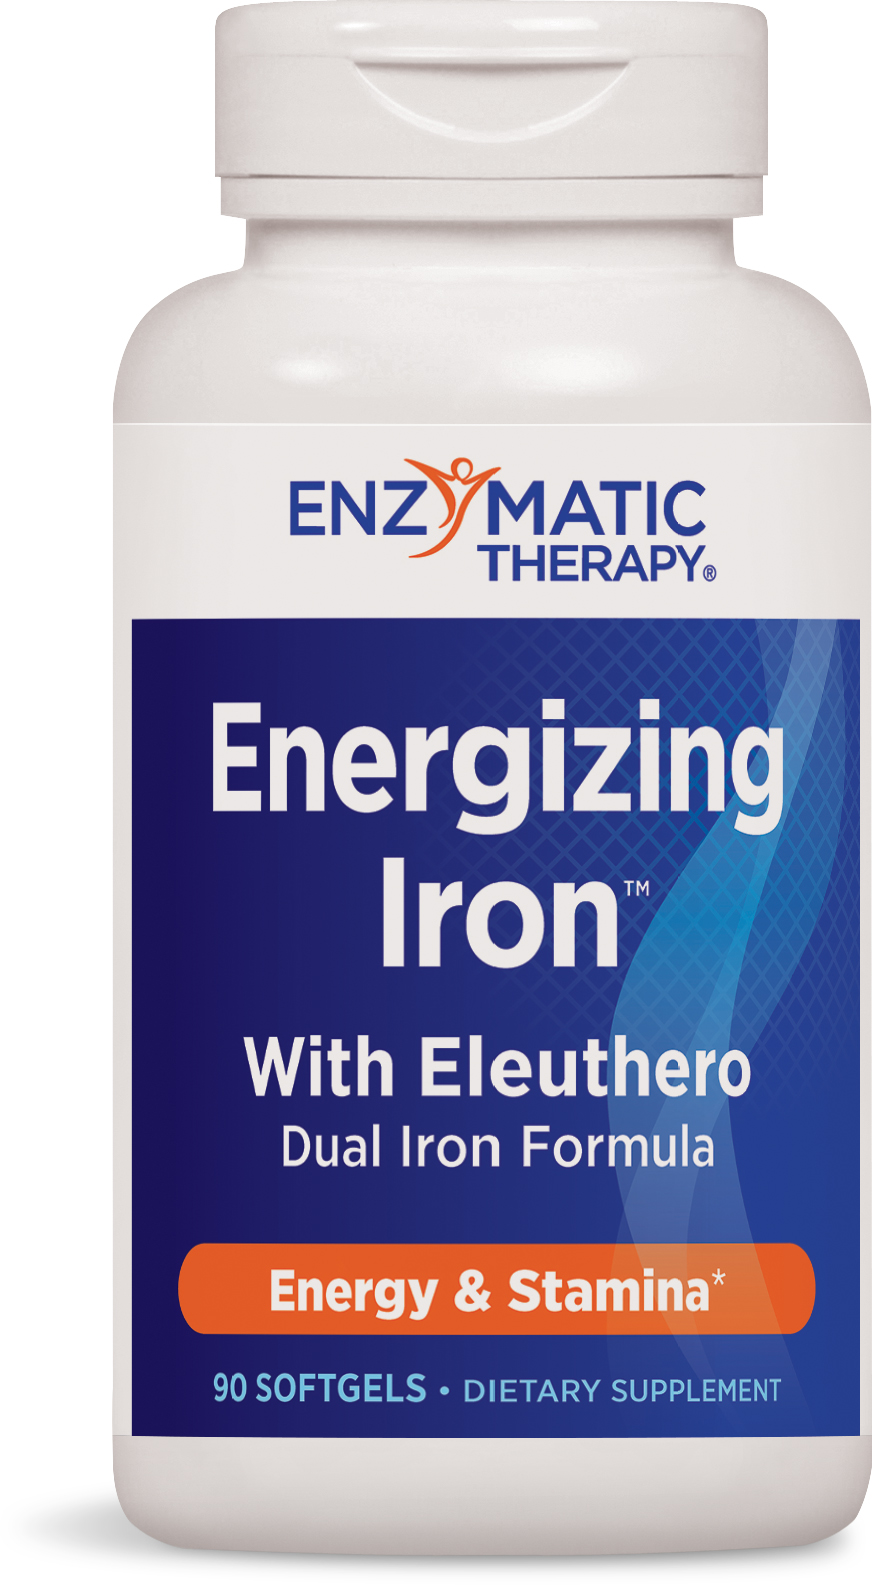 Energizing Iron with Eleuthero 90 sgels by Enzymatic Therapy